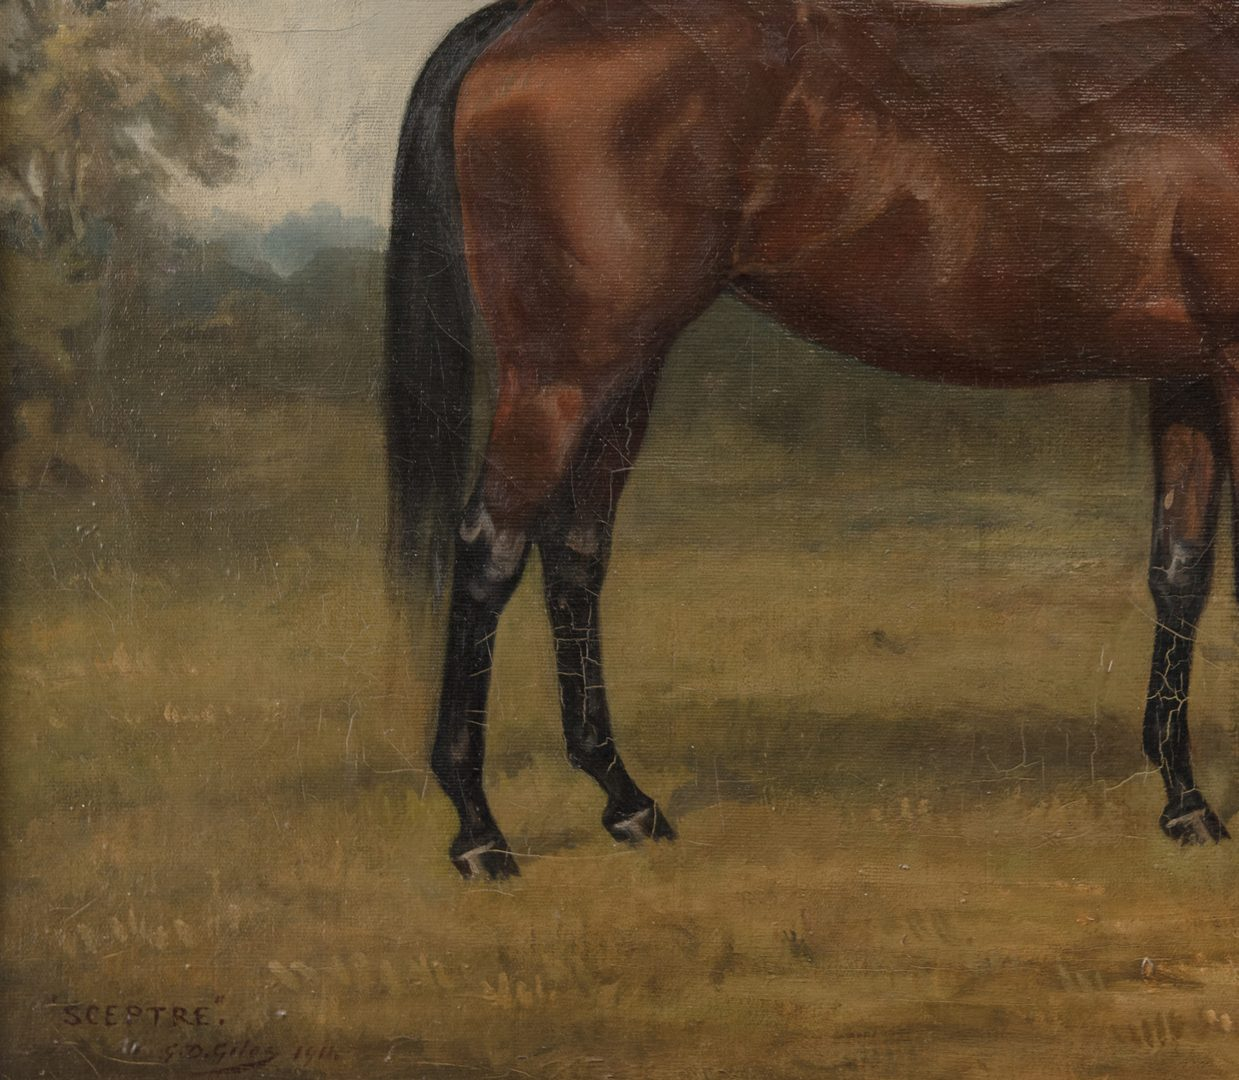 Lot 89: G.D. Giles oil on canvas, Sceptre